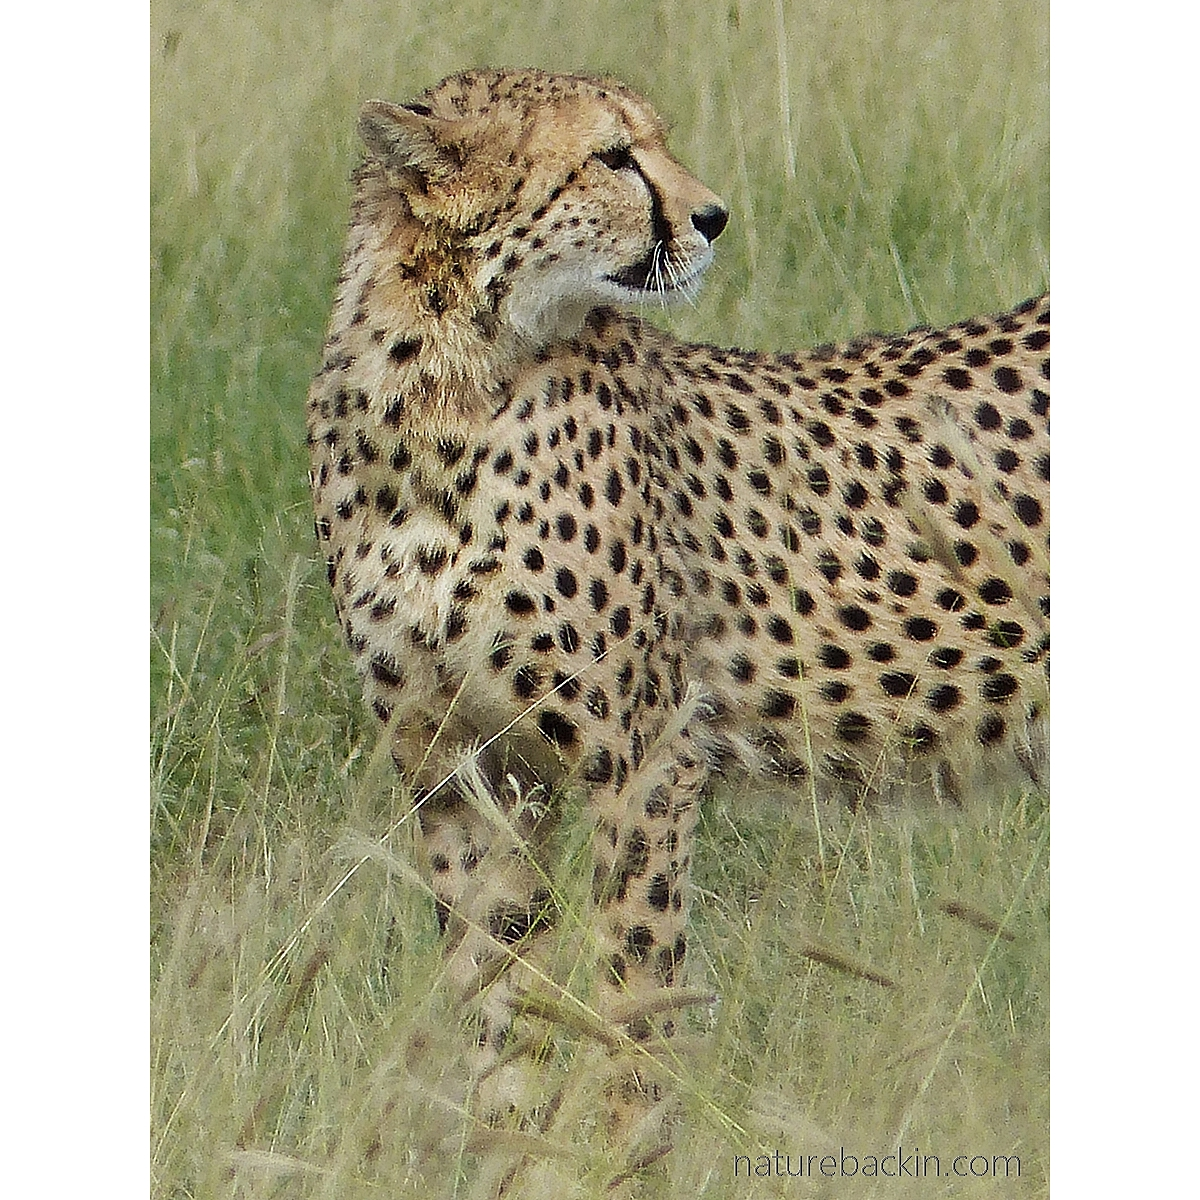 Cheetah showing its spts